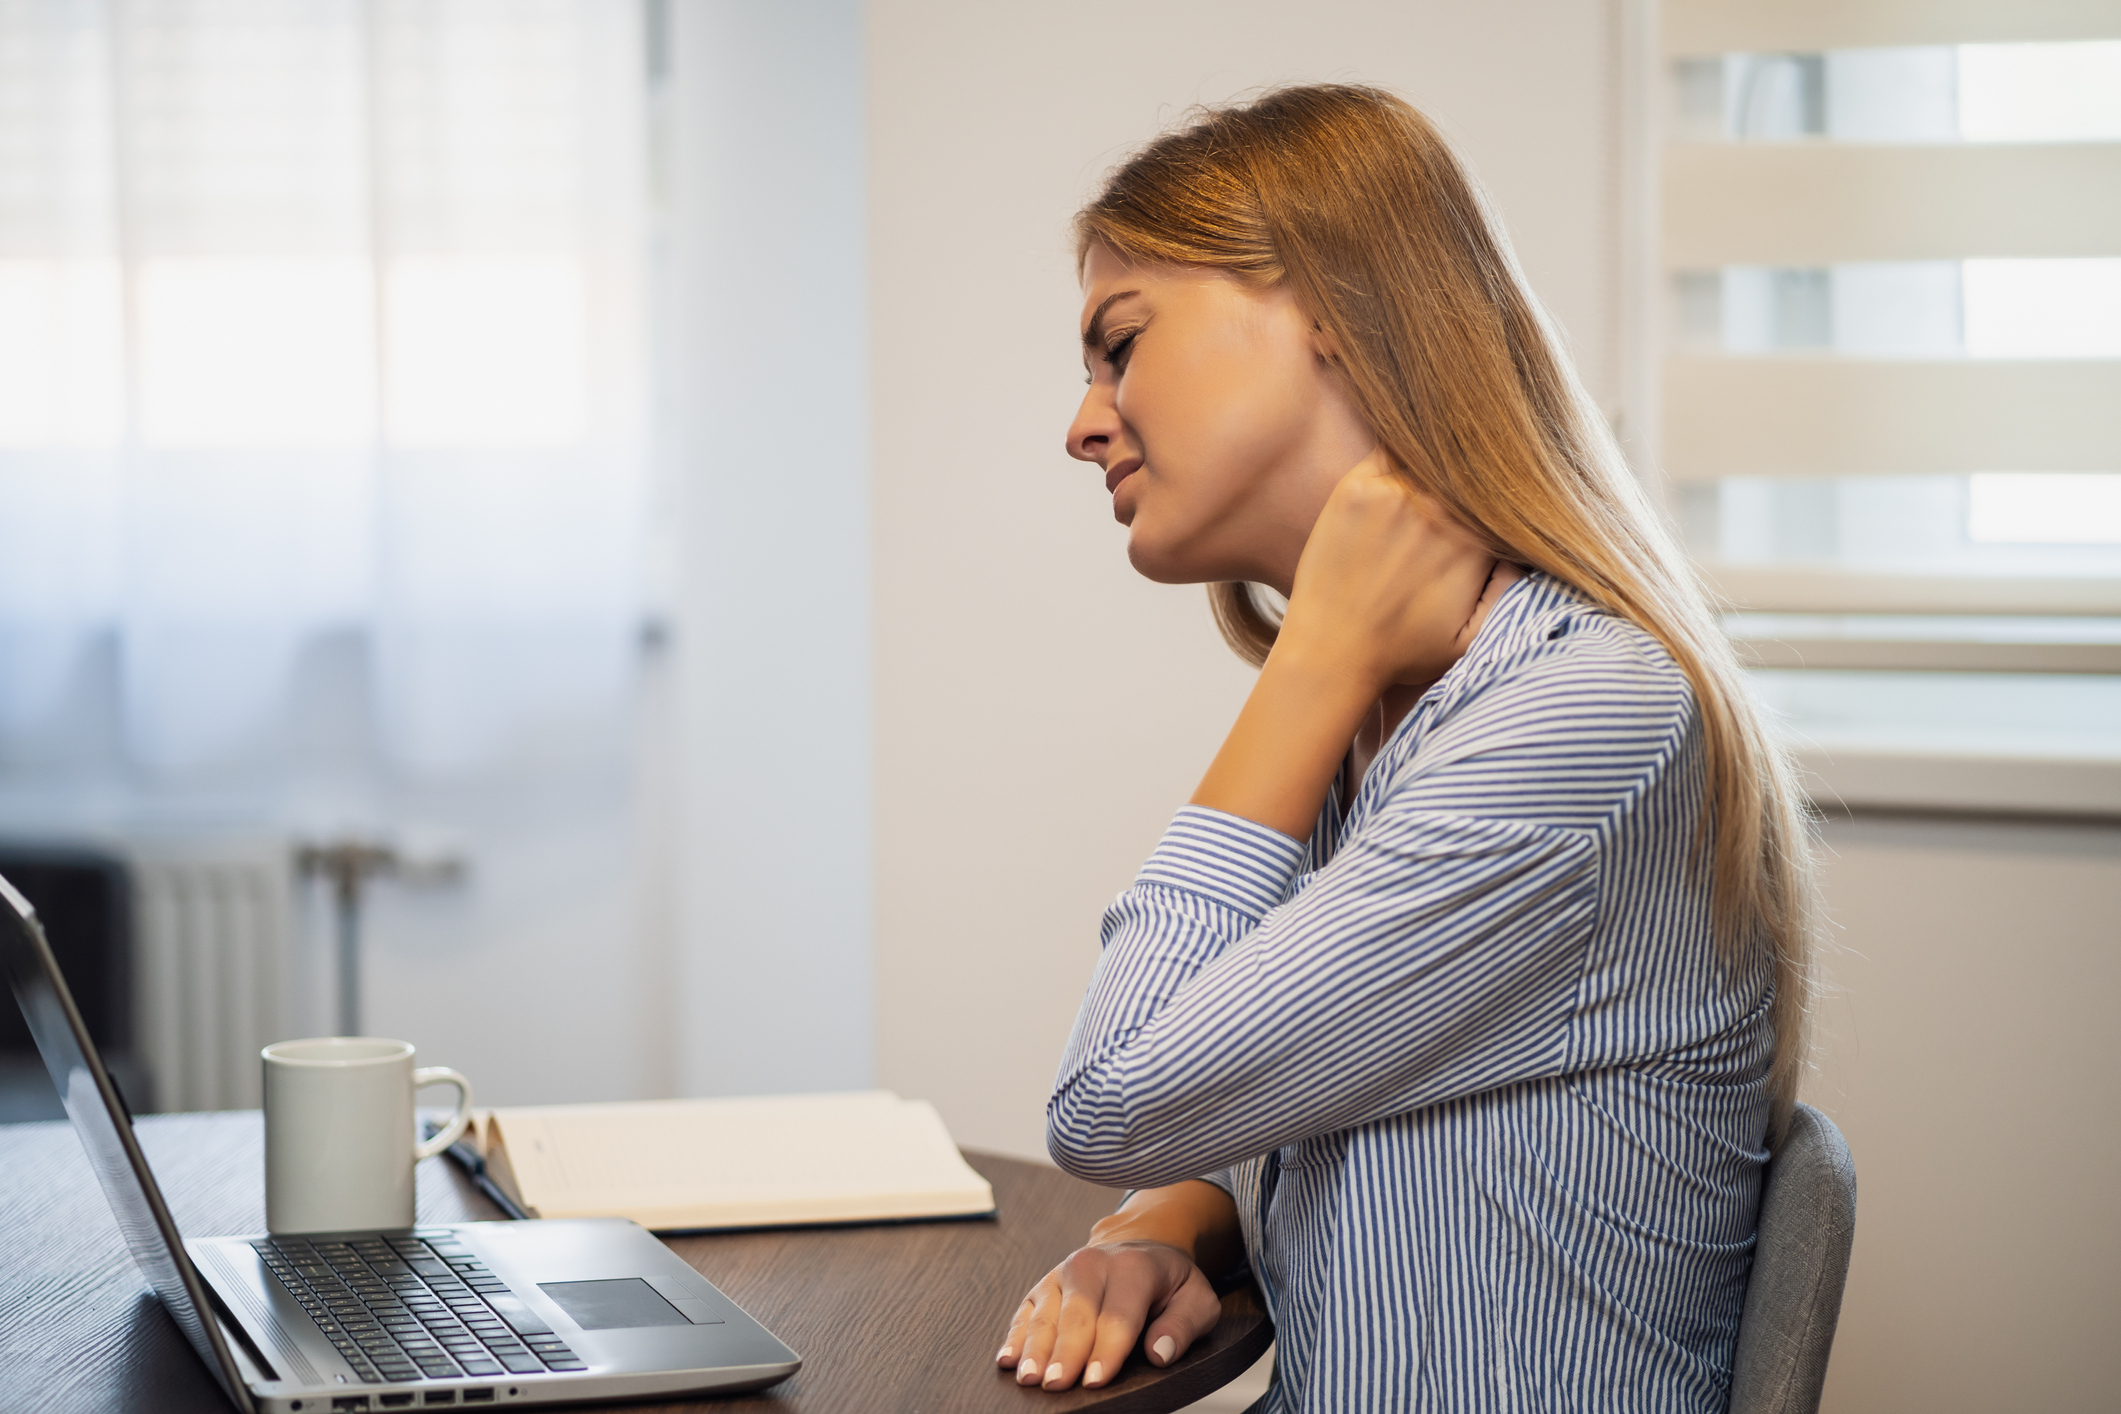 how to avoid muscular pain when working from home